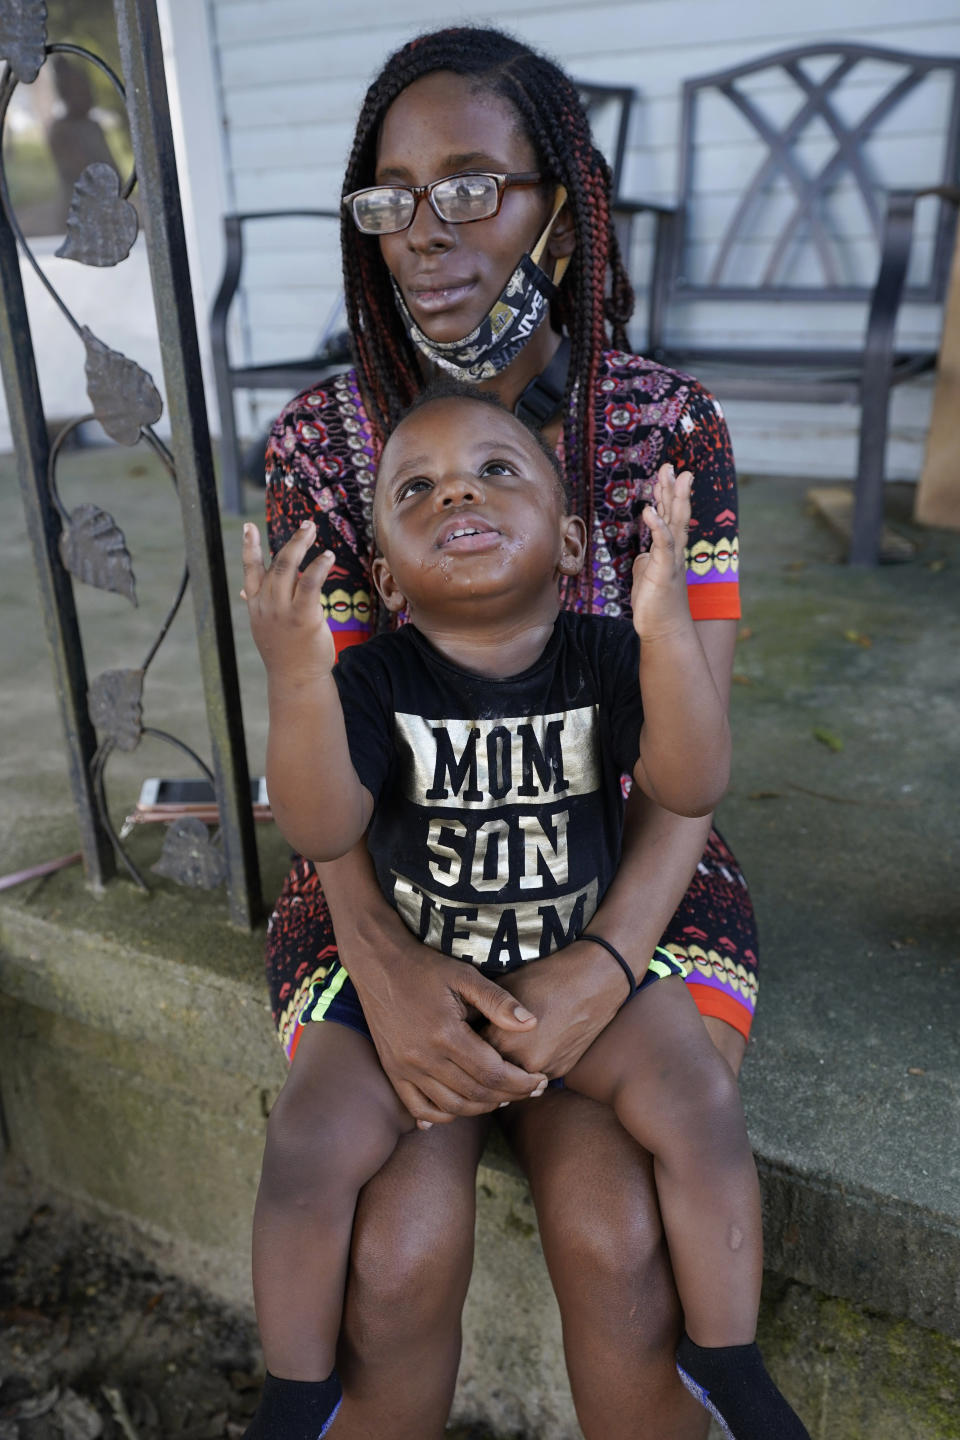 Fakisha Fenderson and her son Tyler sit on the porch of her parent's home in Laurel, Miss., Monday, Aug. 31, 2020. Fenderson's weekly unemployment allotment is under $100, effectively eliminating her chance at receiving the $300 weekly supplement proposed by President Trump's executive order. (AP Photo/Rogelio V. Solis)